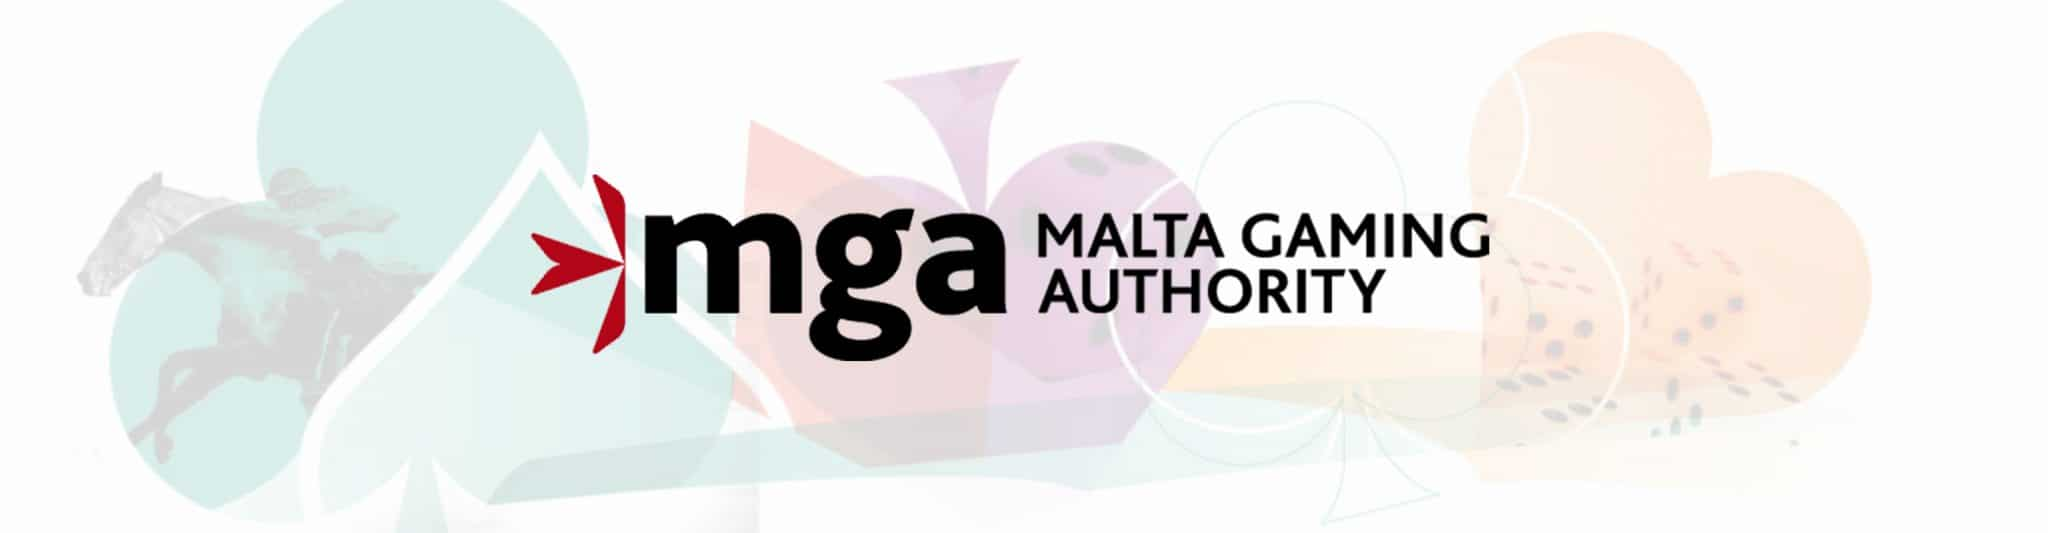 MGA releases first 2019 performance report Banner 01 - CasinoTopp